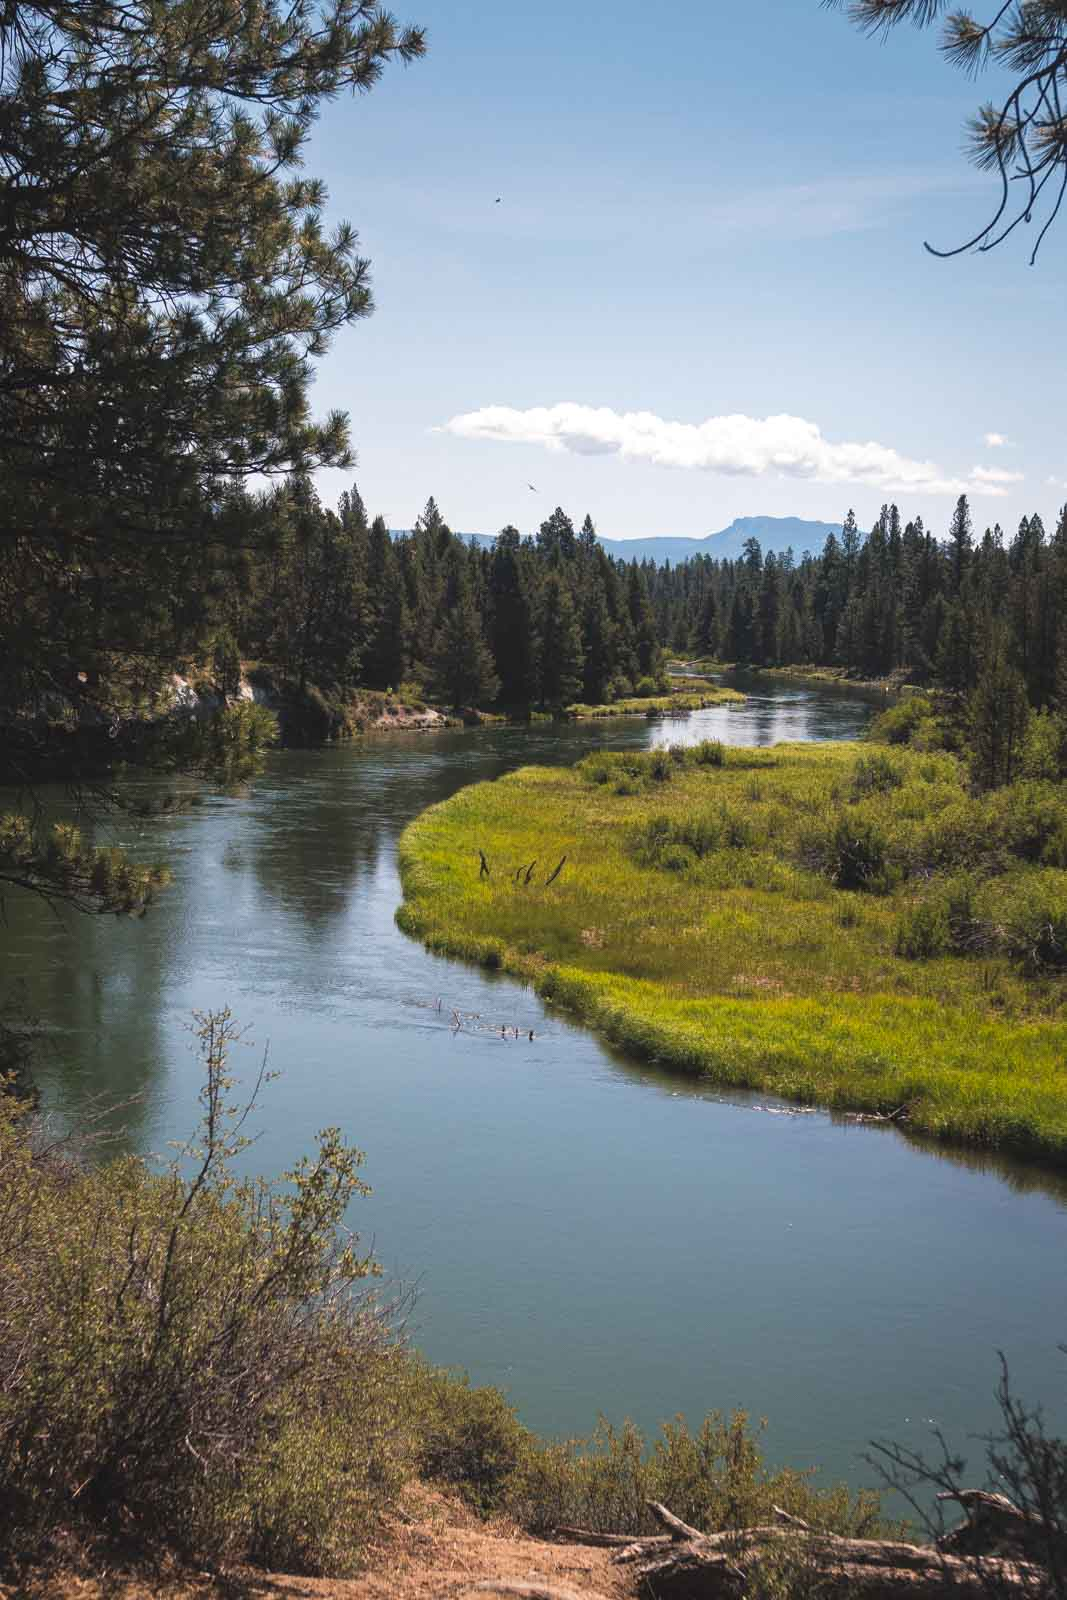 Exploring LaPine State Park is one of many adventurous things to do in Sunriver.